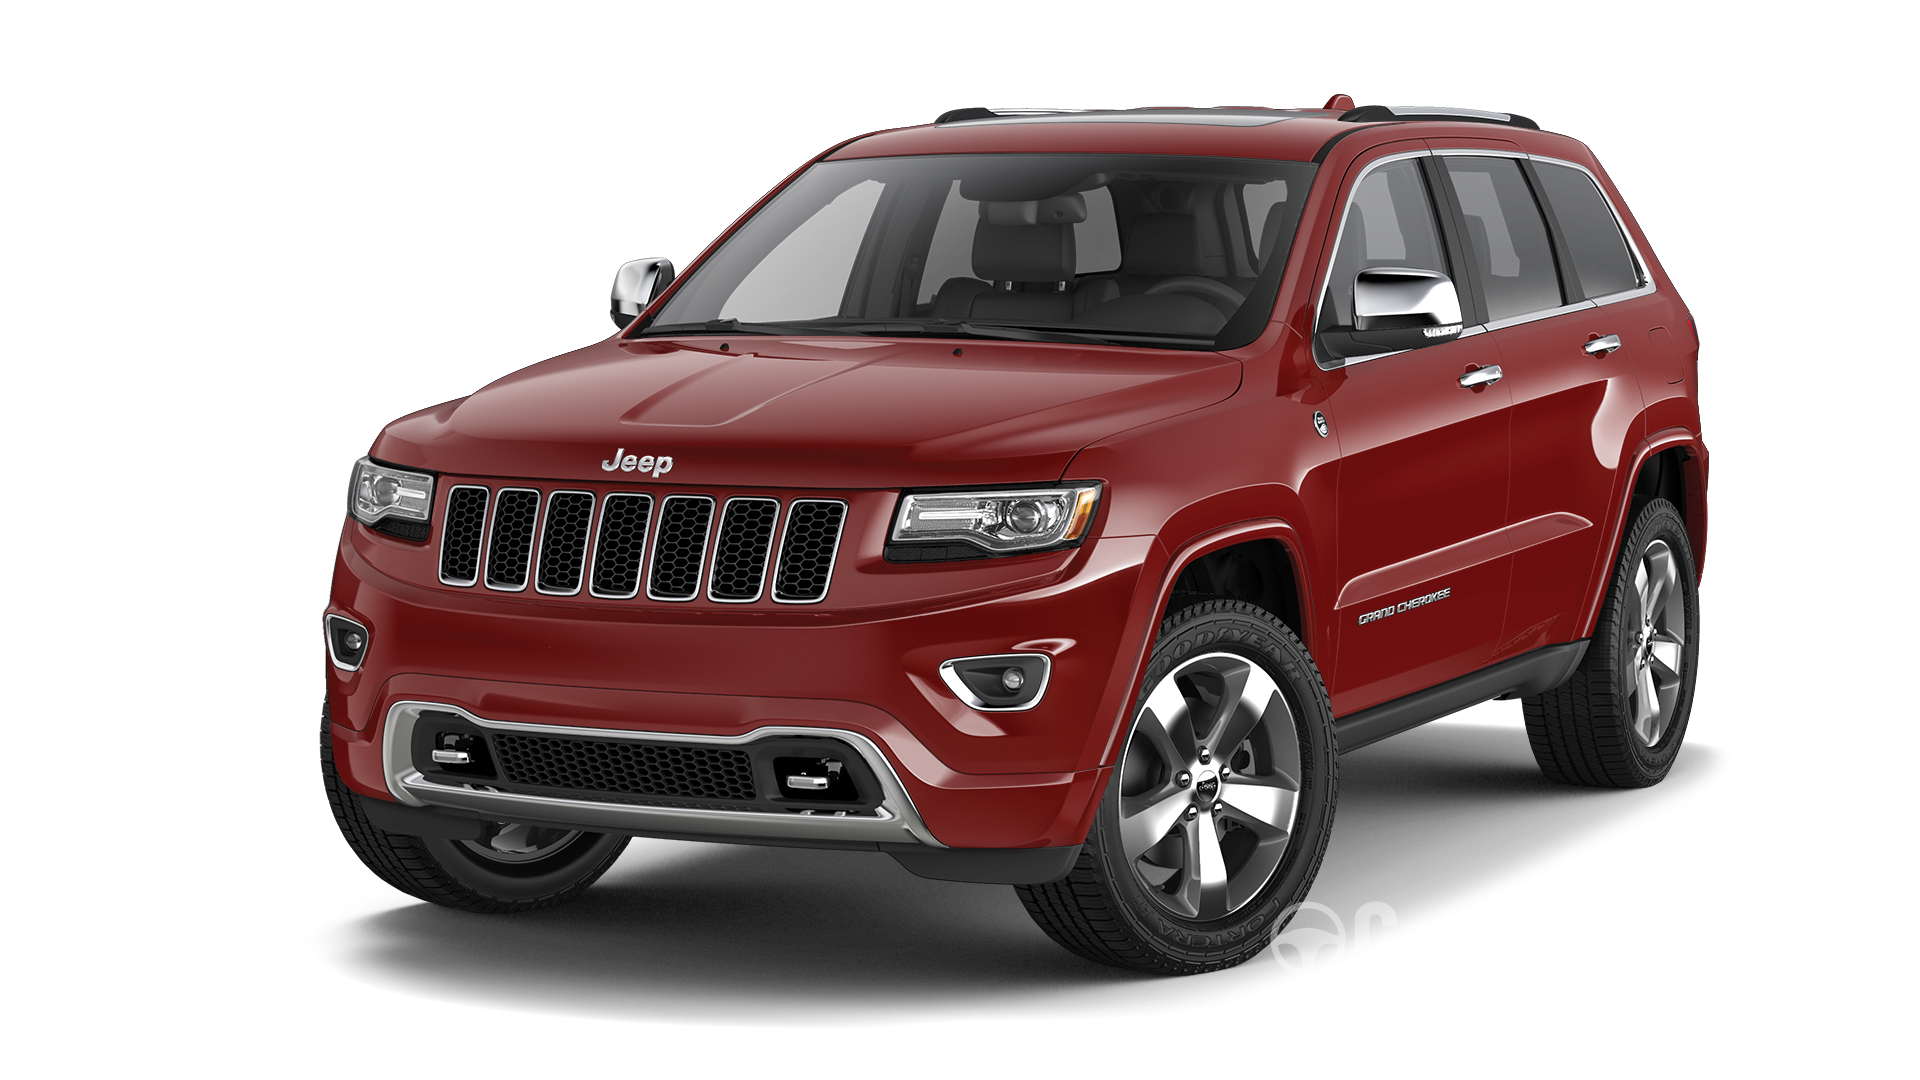 jeep grand cherokee wk2 2014 exterior image in malaysia. Black Bedroom Furniture Sets. Home Design Ideas